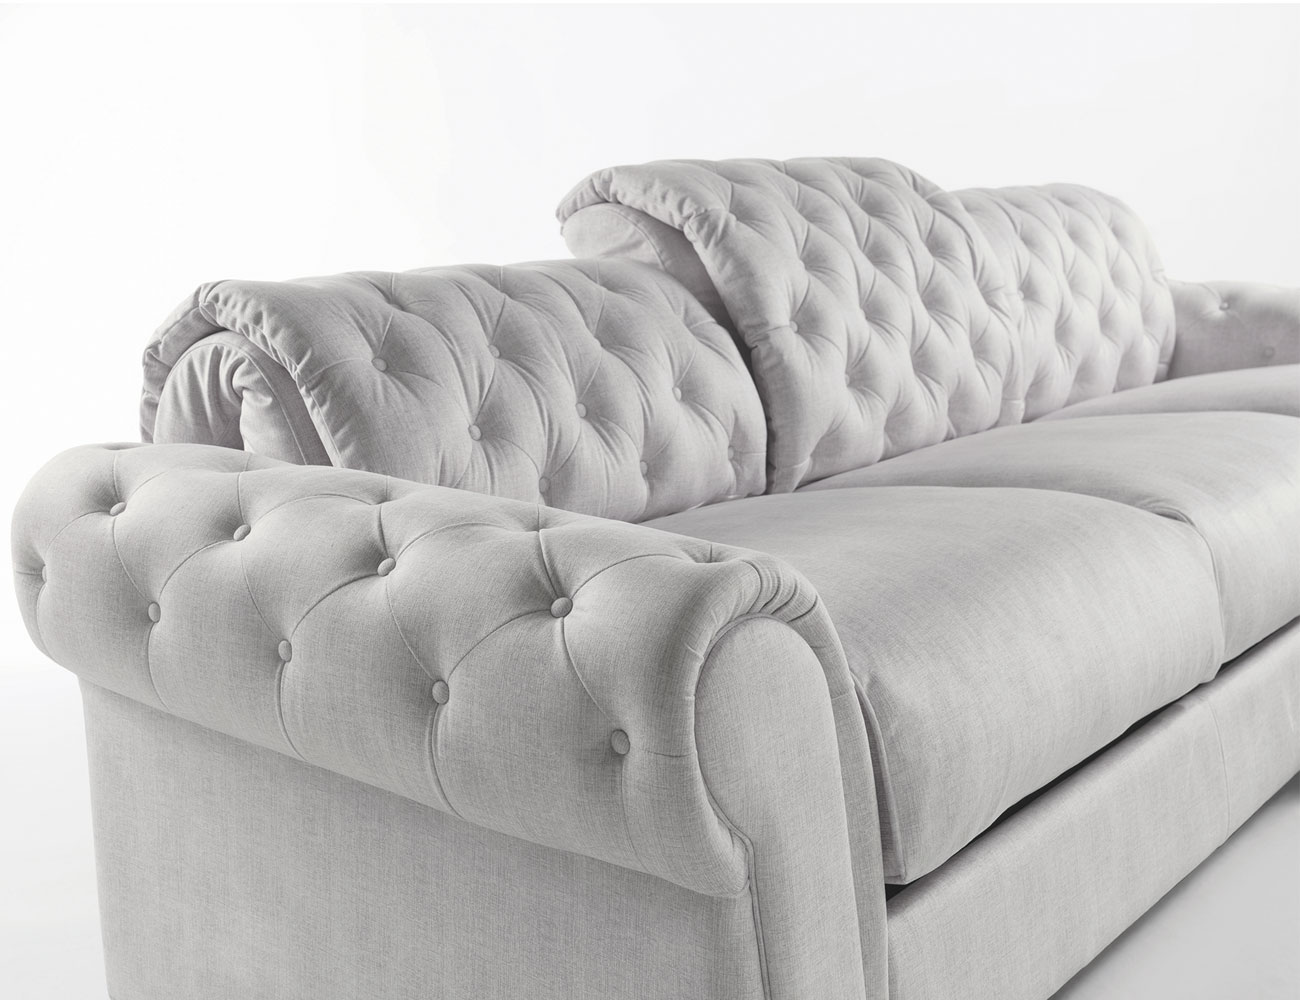 Sofa chaiselongue gran lujo decorativo capitone blanco tela 145